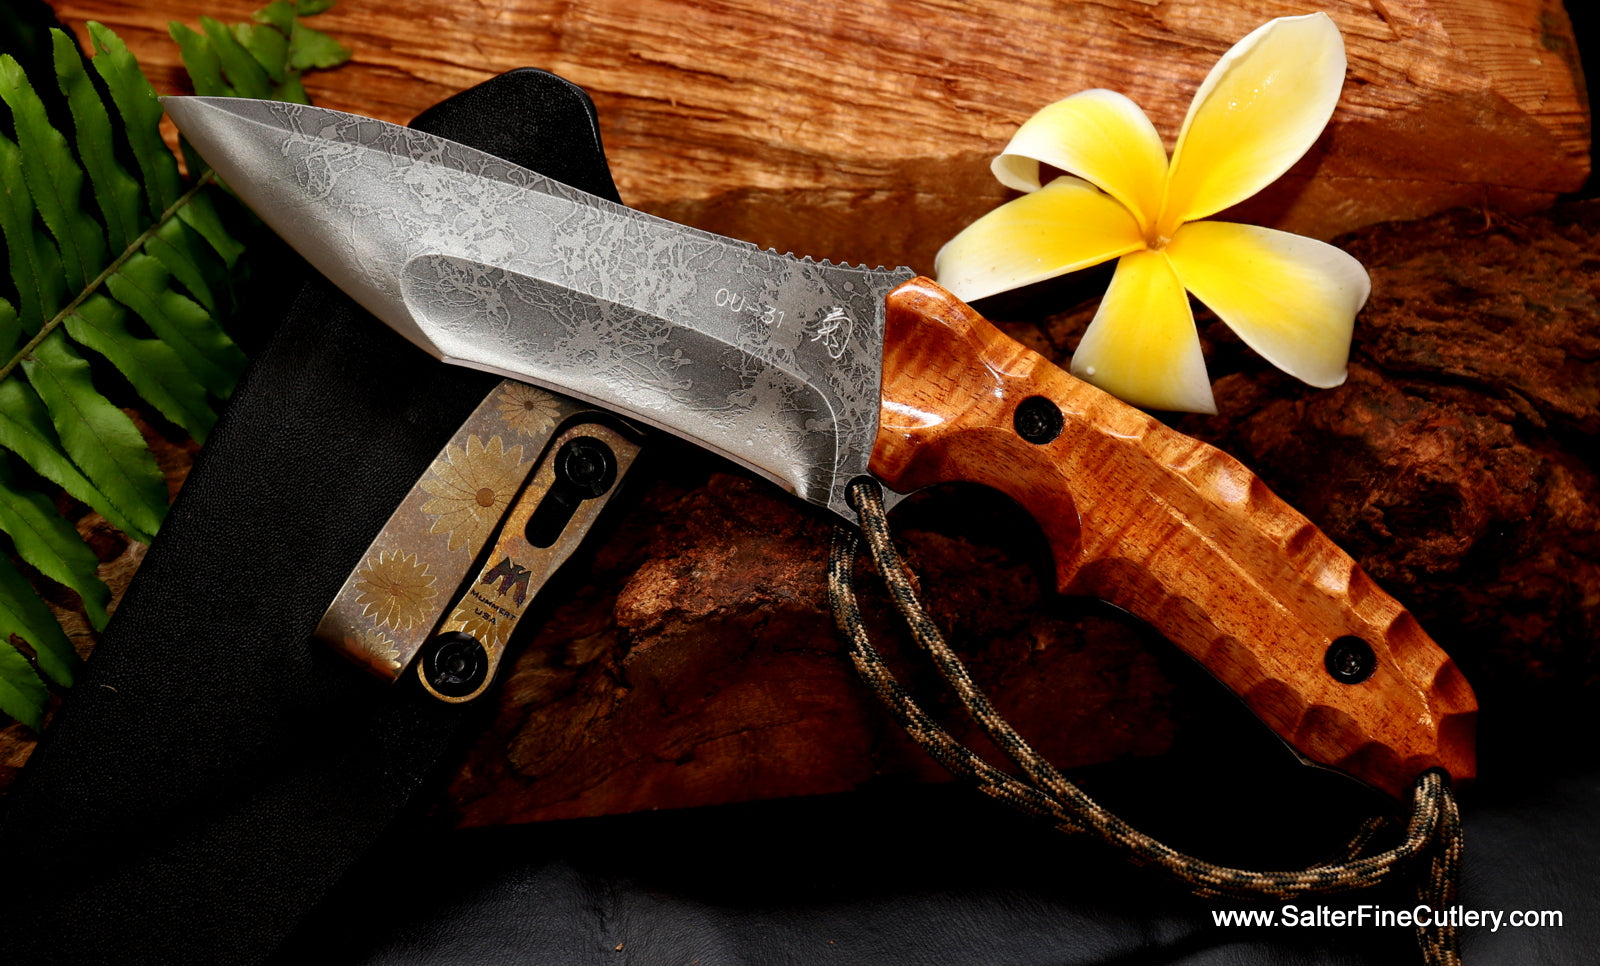 Hunting knife Salter-Kiku Collaboration knives from Salter Fine Cutlery